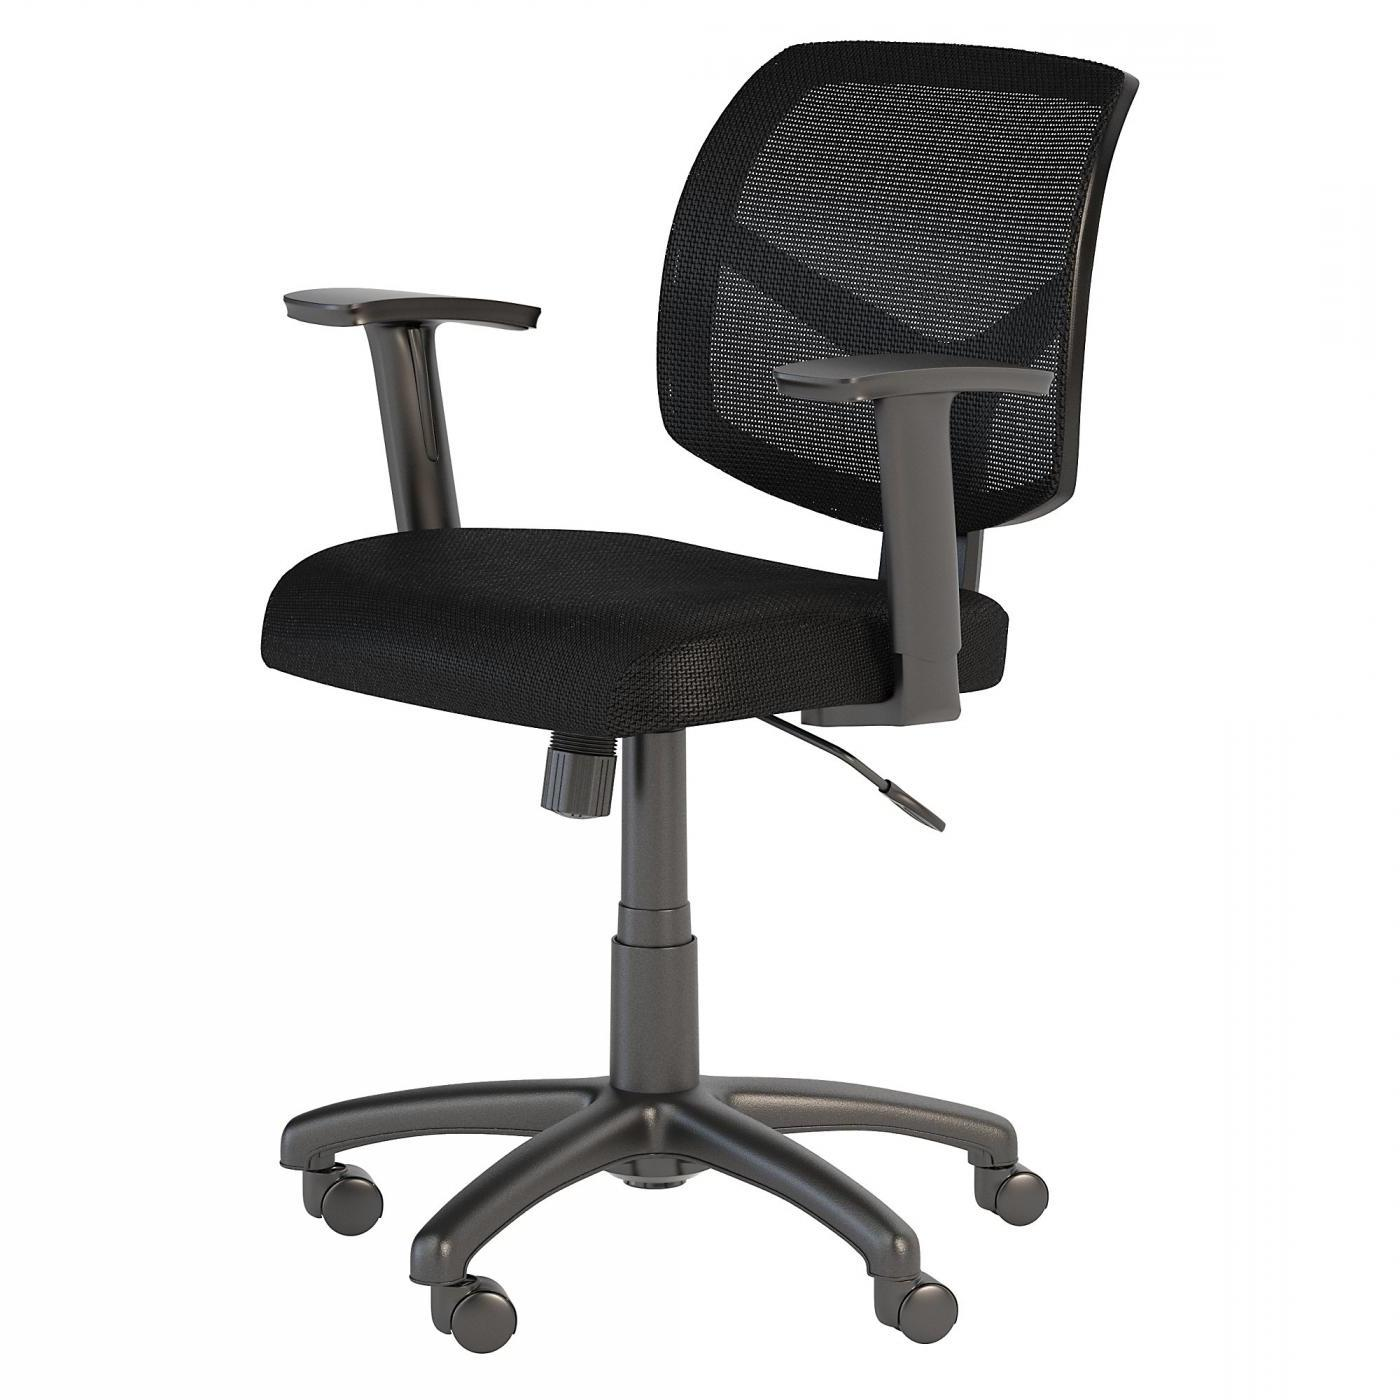 </b></font><b>BUSH BUSINESS FURNITURE PETITE MESH BACK OFFICE CHAIR. FREE SHIPPING</font>. </b></font></b>